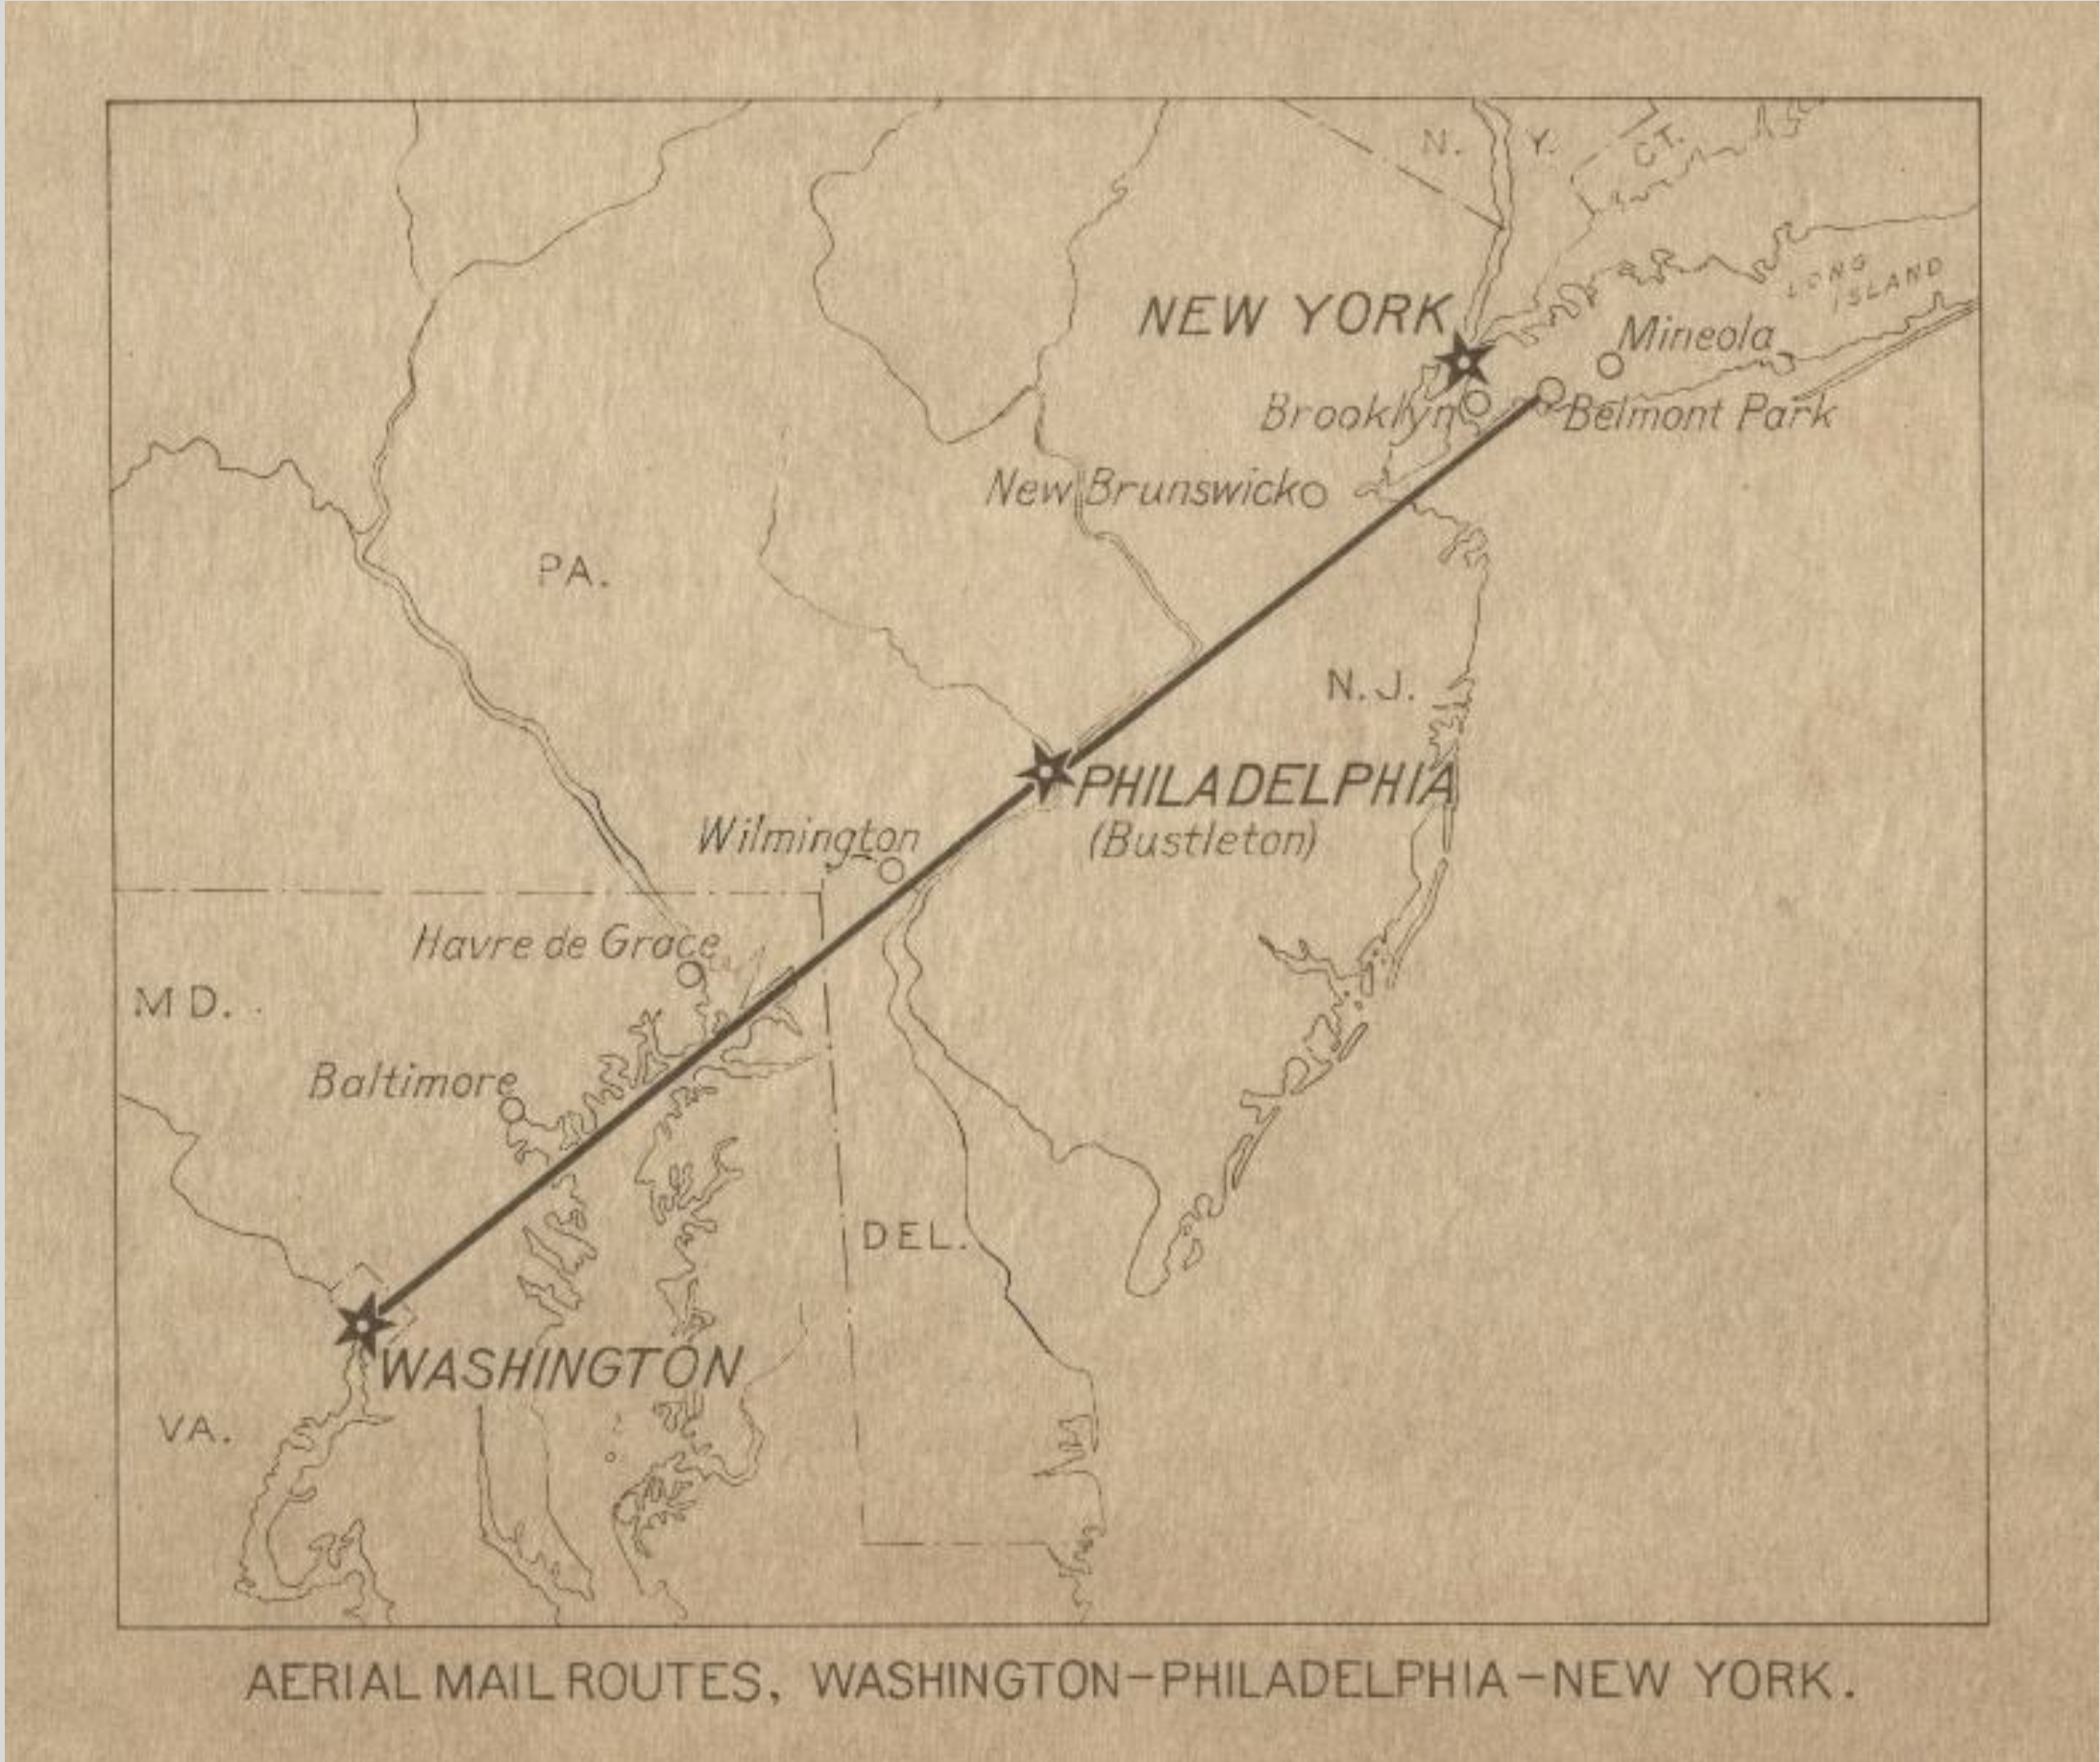 The first regularly scheduled airmail route connected Washington, D.C. and Bew York via Philadelphia from May 15, 1918 to May 31, 1921. The Post Office Department operated the 218-mile route to demonstrate that mail transportation by airplane was possible on a regular schedule in all kinds of weather.